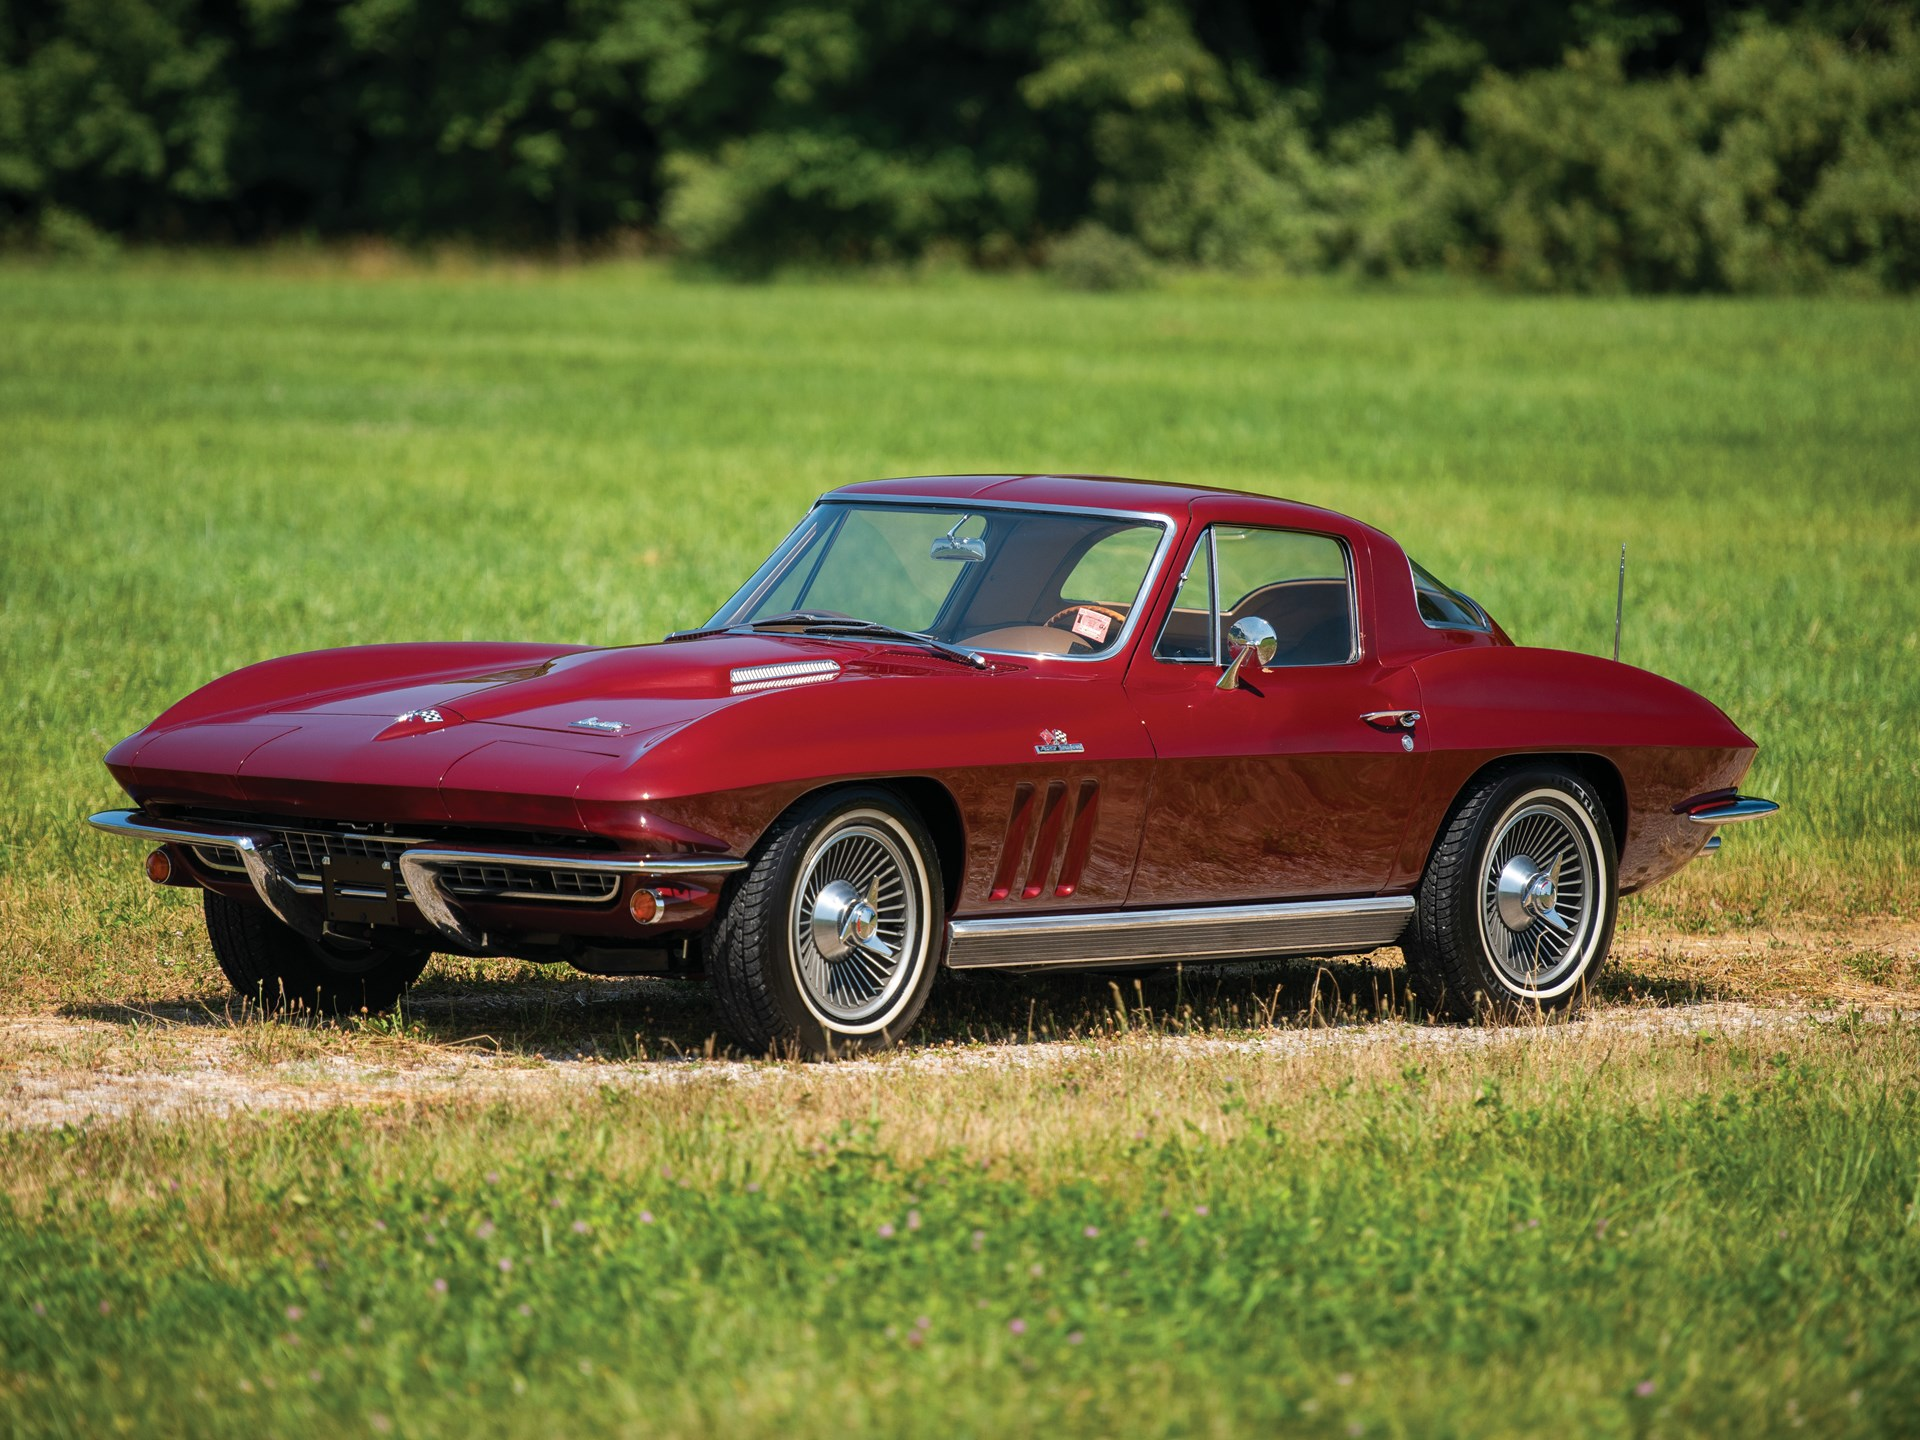 1966 Chevrolet Corvette Sting Ray 427/425 Coupe